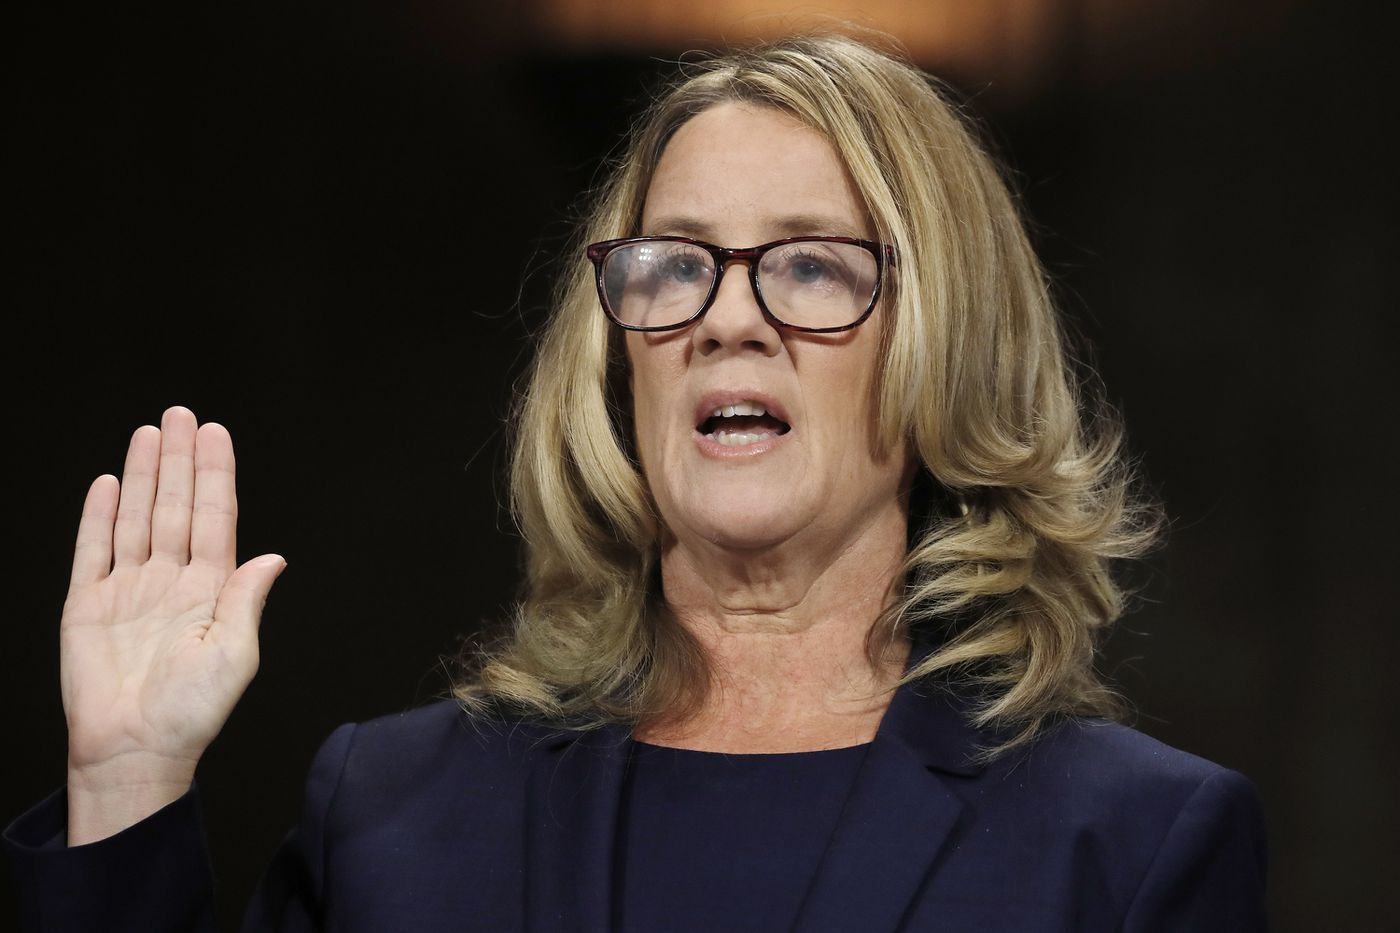 Sen. Bob Casey: Why I believe Dr. Ford | Opinion